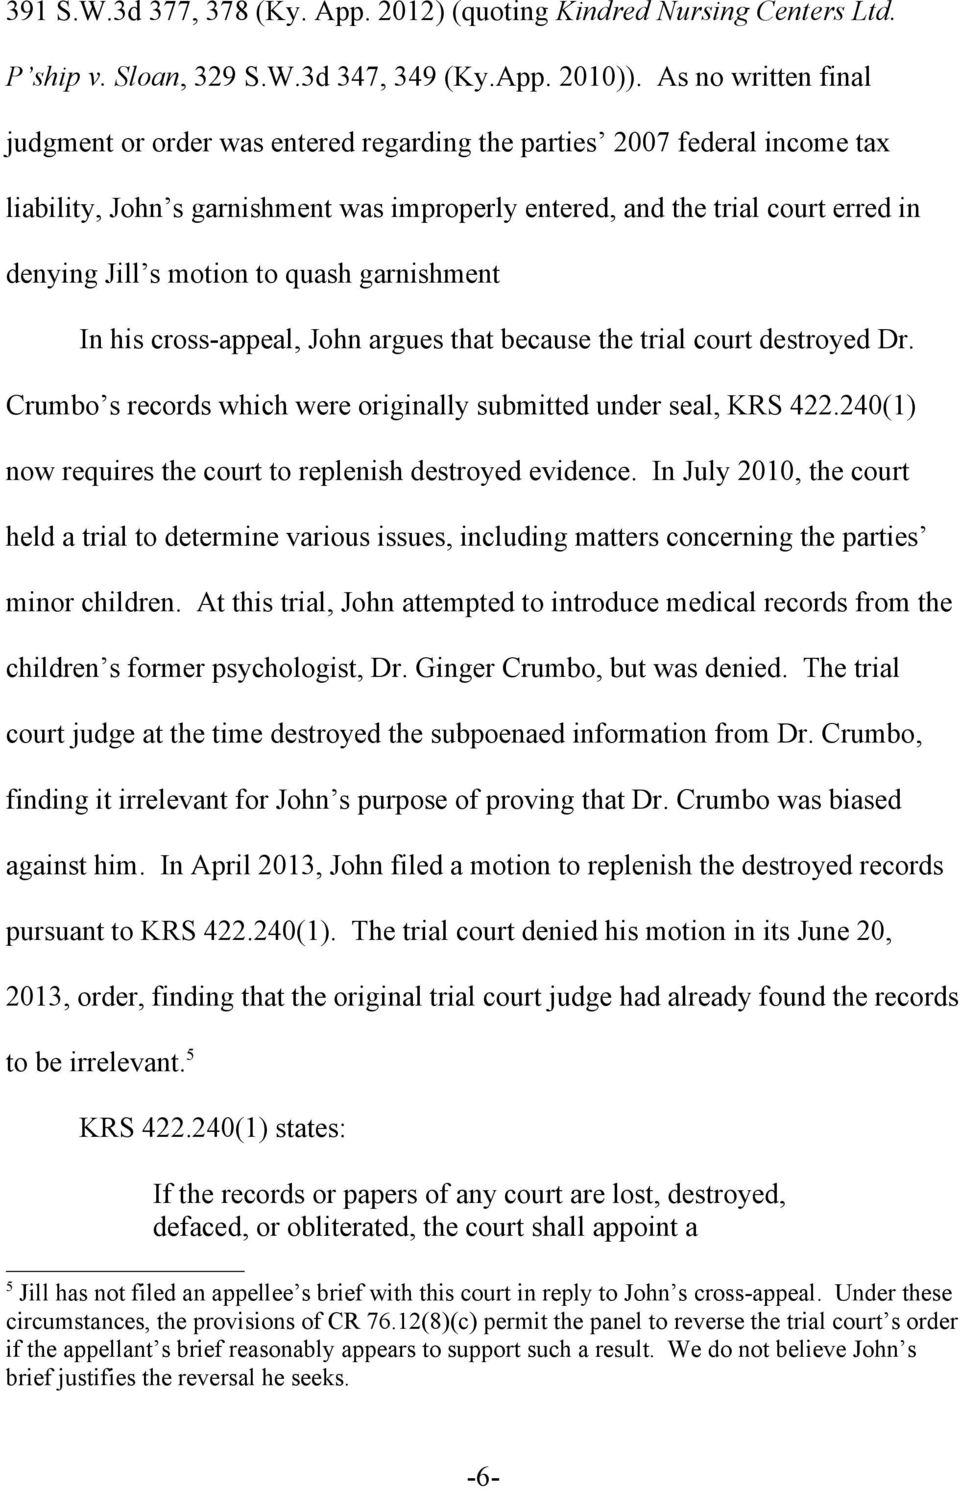 motion to quash garnishment In his cross-appeal, John argues that because the trial court destroyed Dr. Crumbo s records which were originally submitted under seal, KRS 422.